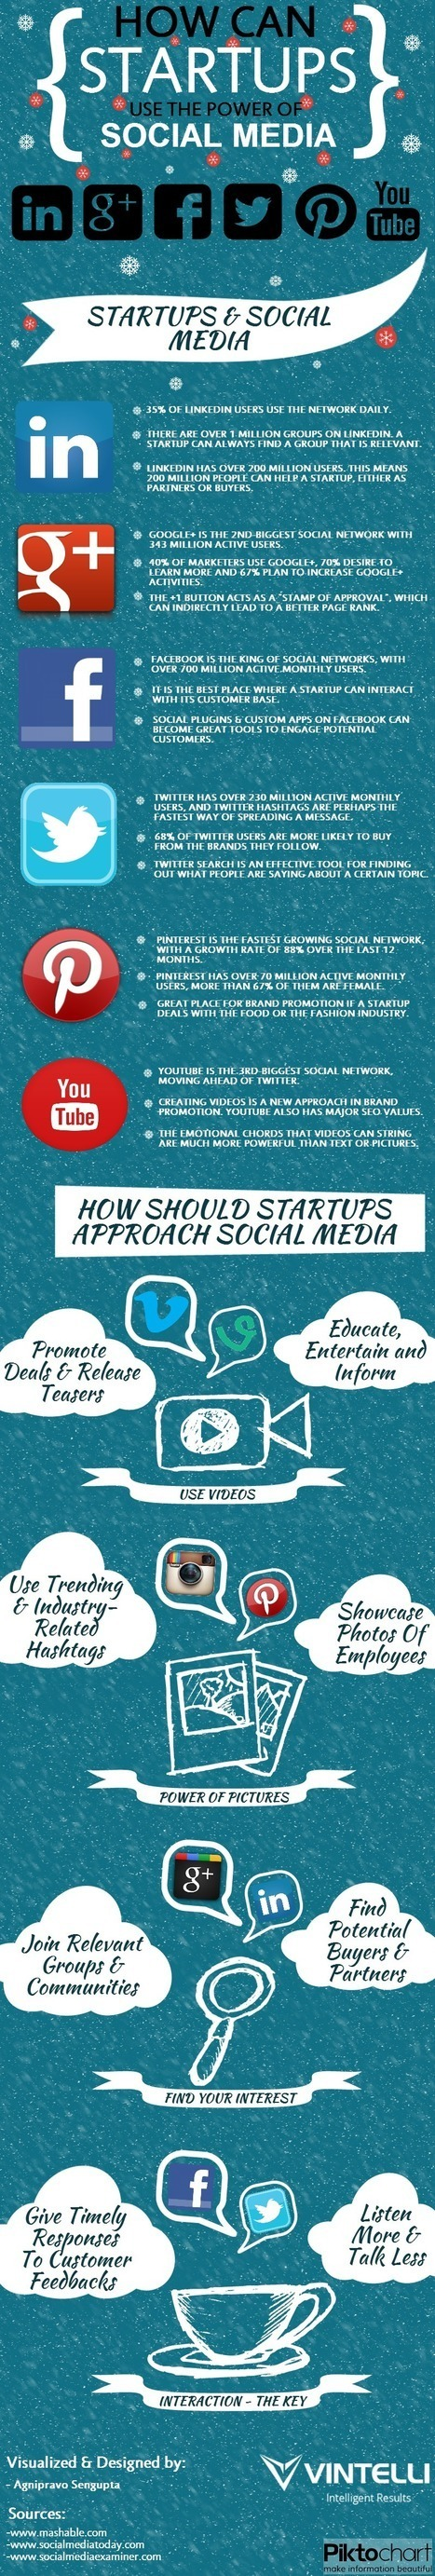 How Can Startups Use The Power Of Social Media (Infographic) | Pitch it! | Scoop.it